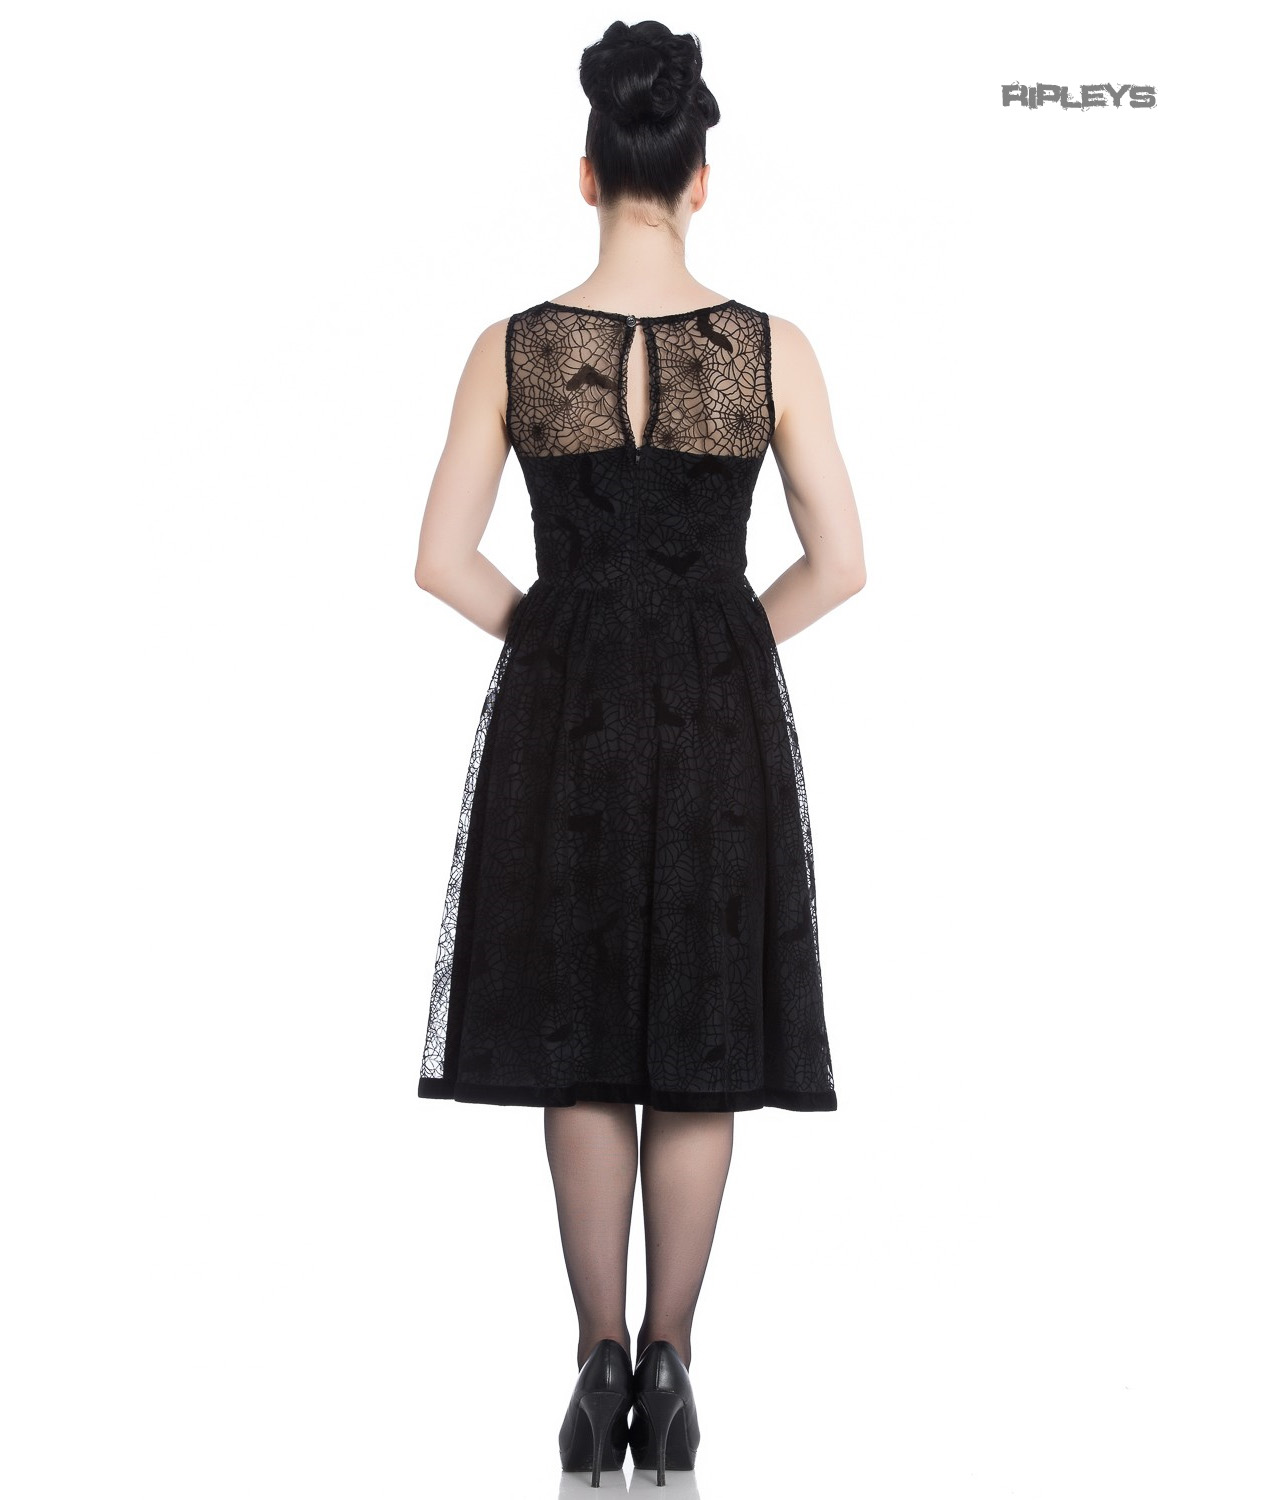 Hell-Bunny-50s-Black-Gothic-Net-Dress-Witchy-AMARANDE-Spiders-Bats-All-Sizes thumbnail 16